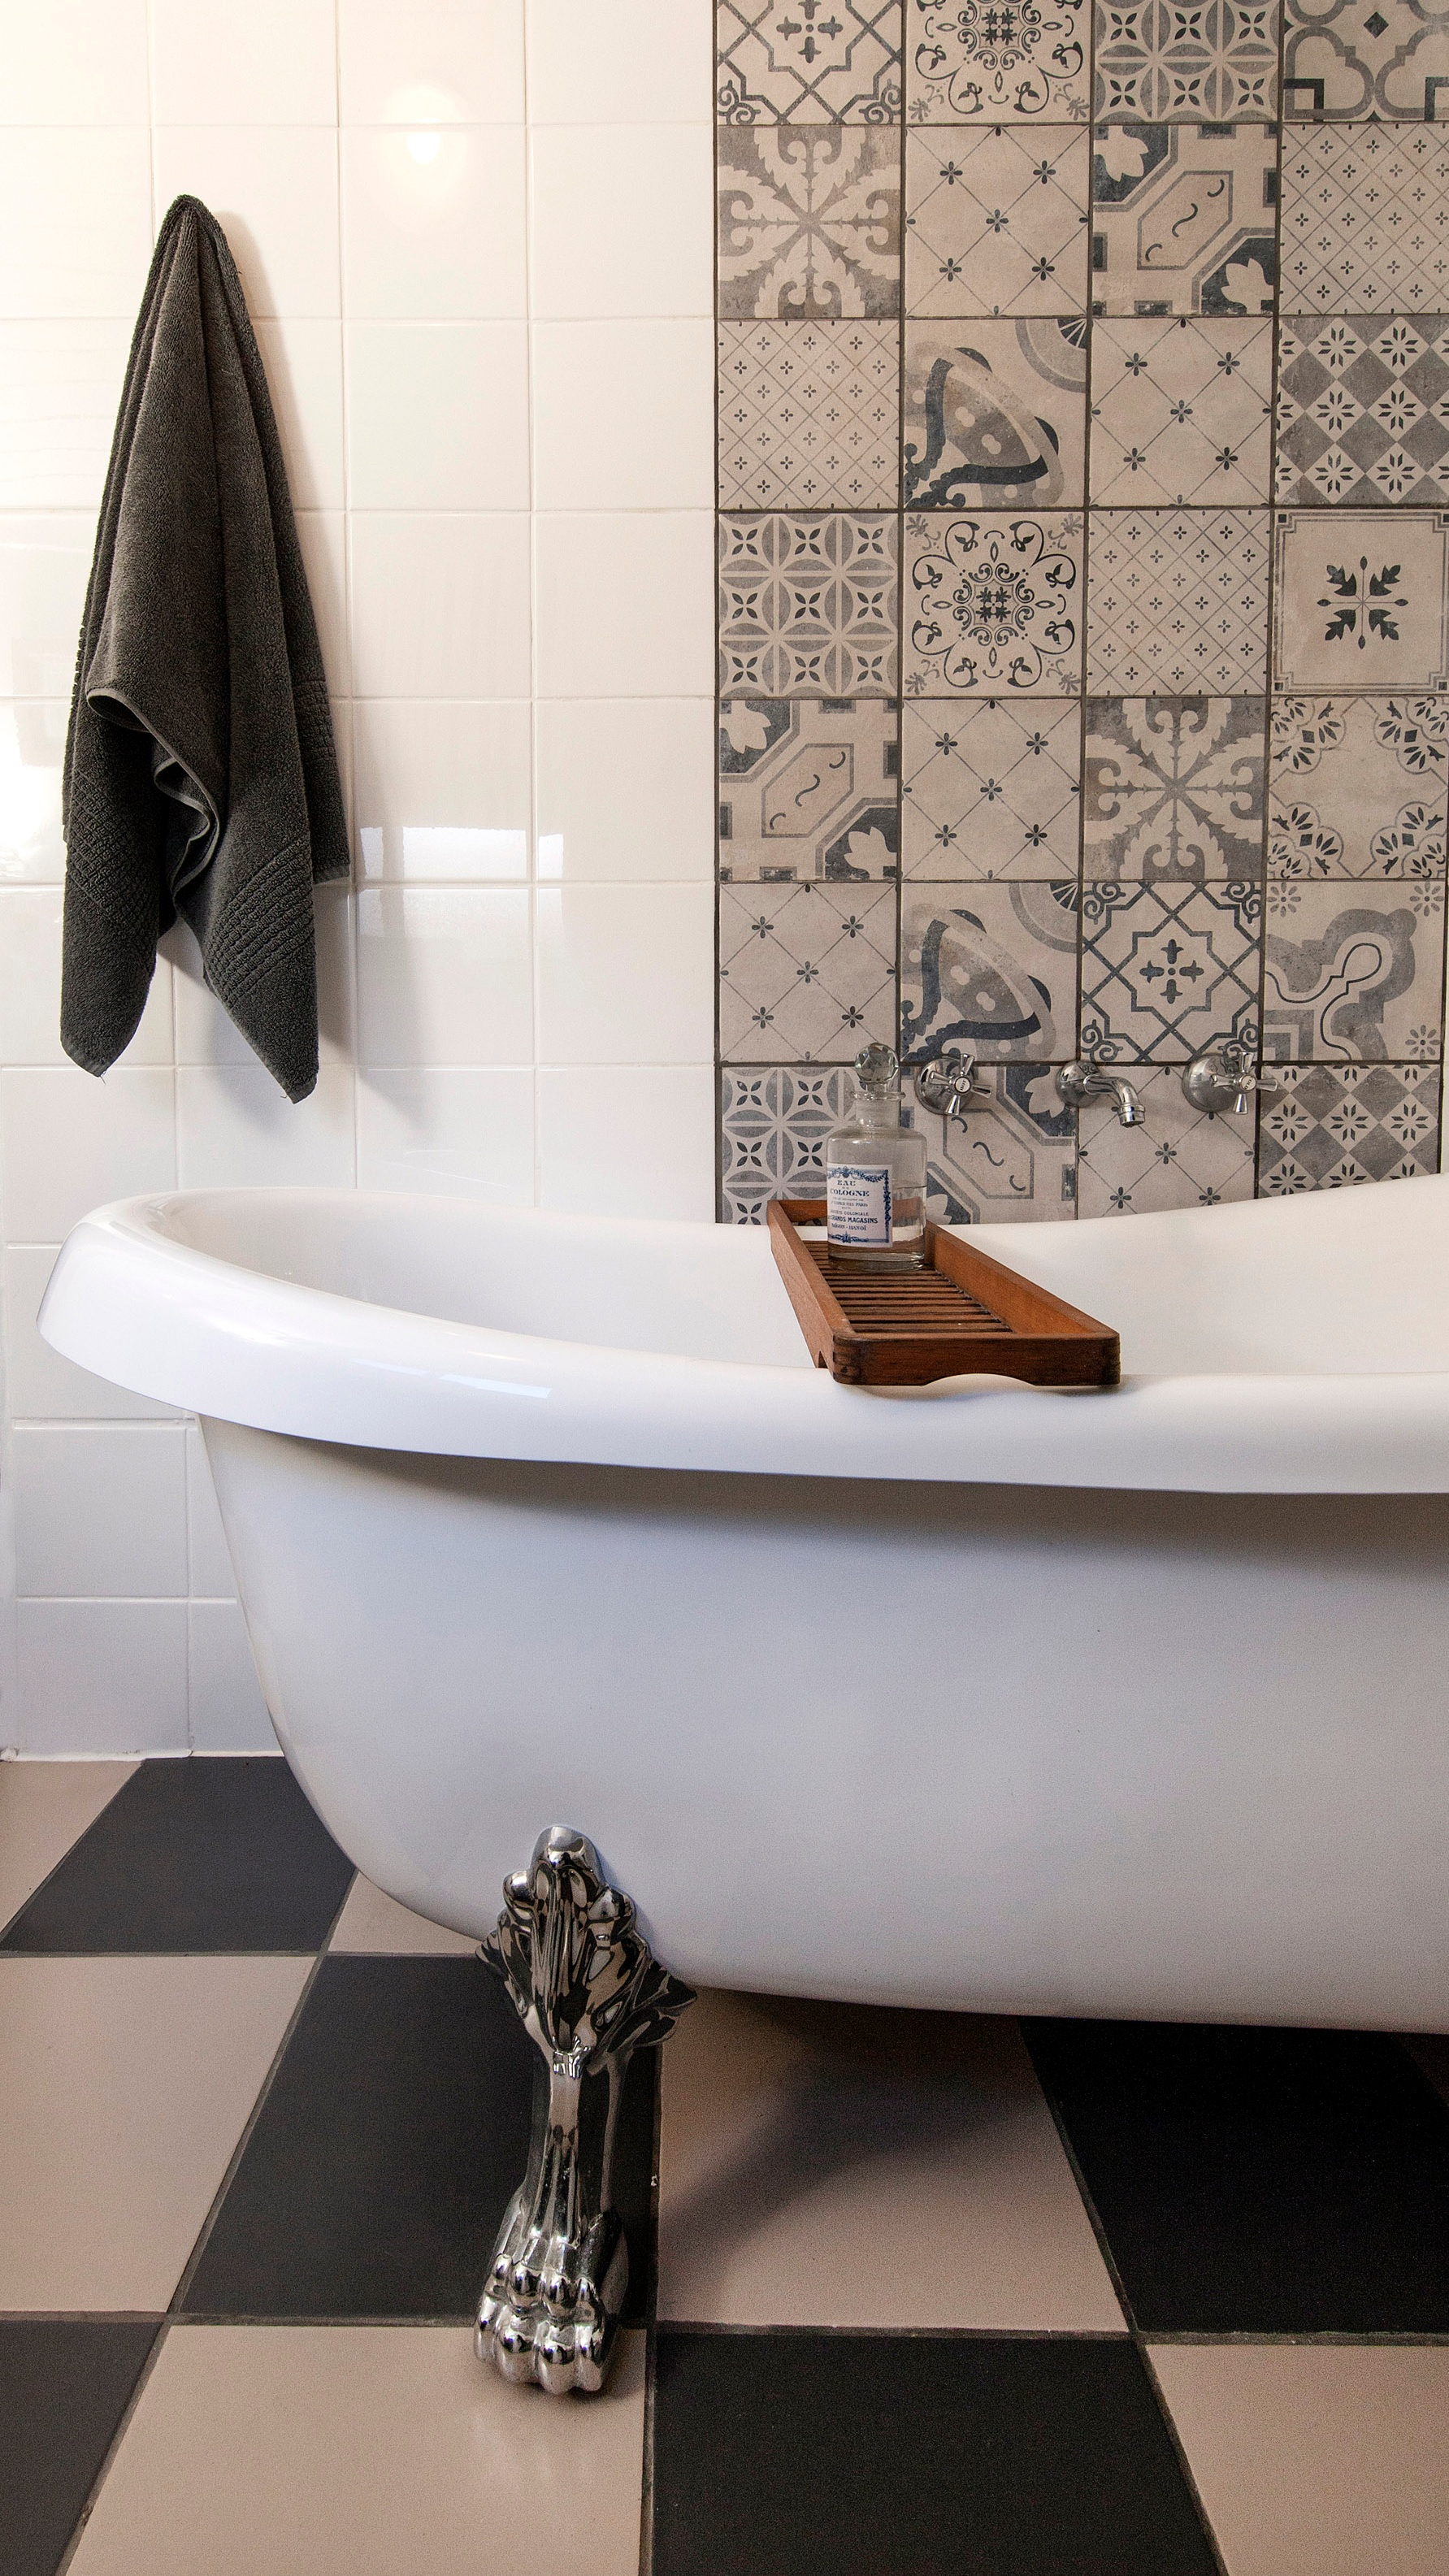 Carrie+Deverson+Interiors+Cottage+Bathroom+Blue+and+White+Tiles+Claw+Foot+Bath+Adelaide+Interior+Design